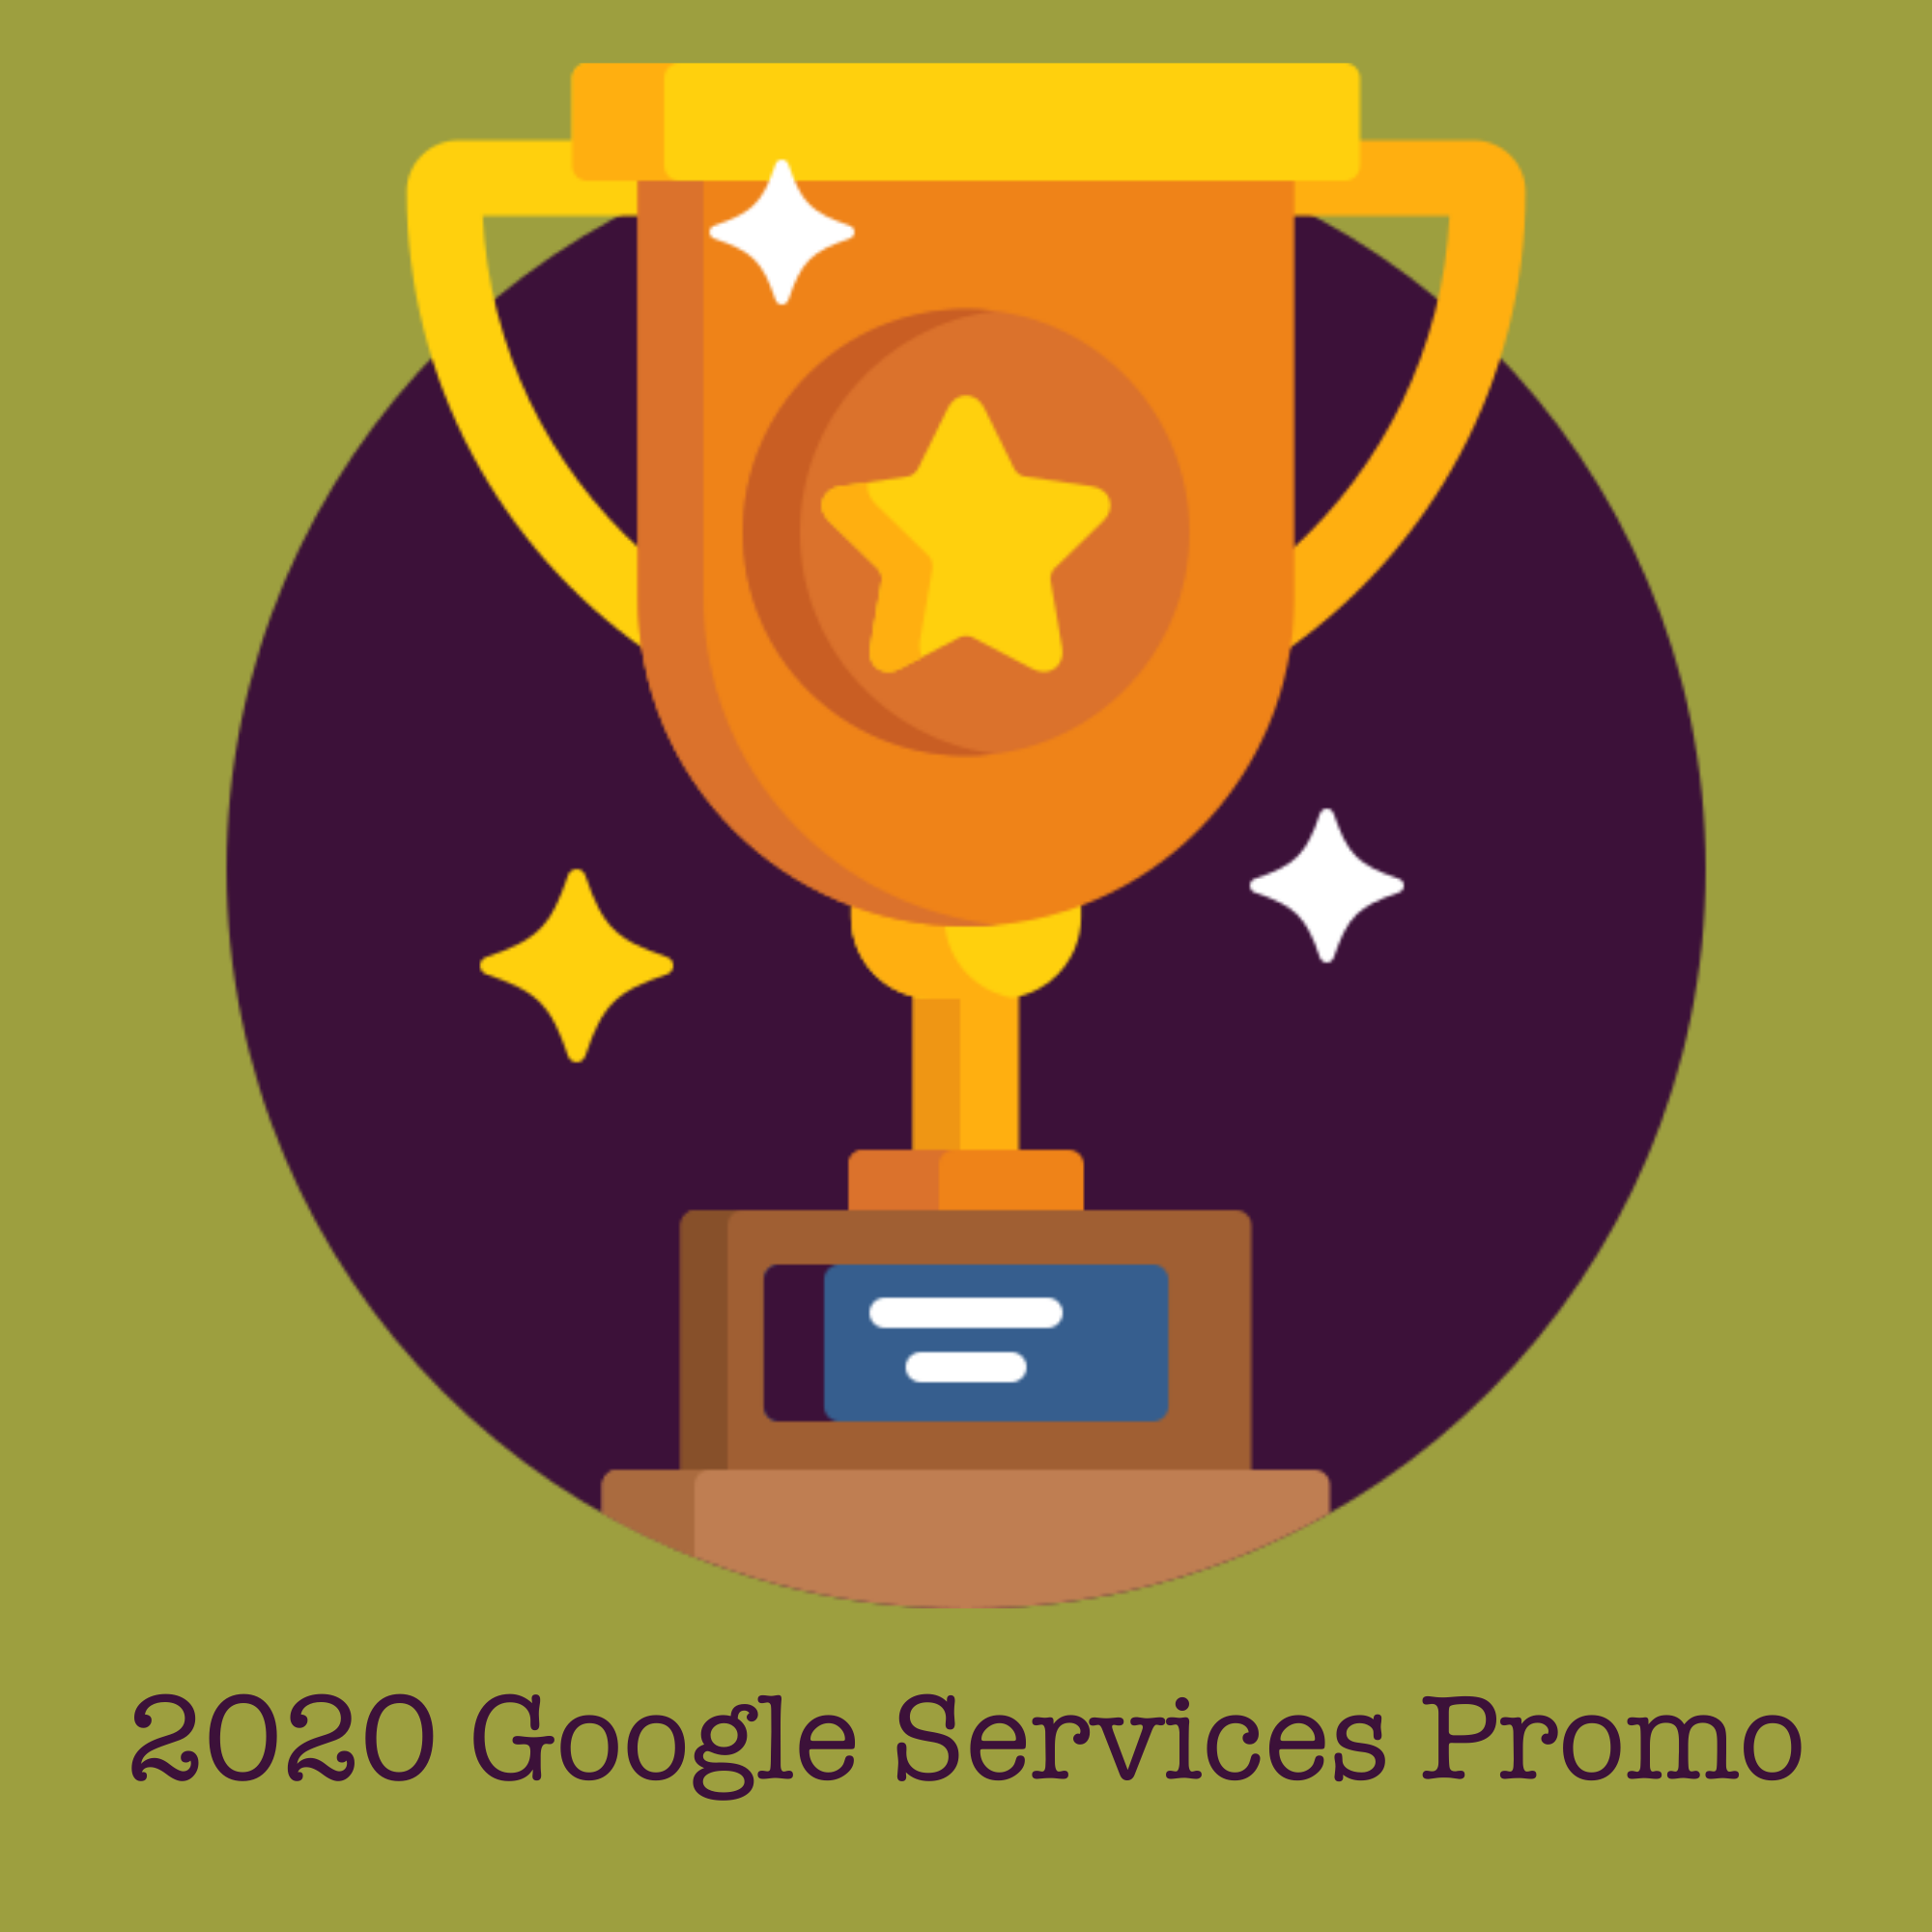 2020 Google Promo friEdTechnology